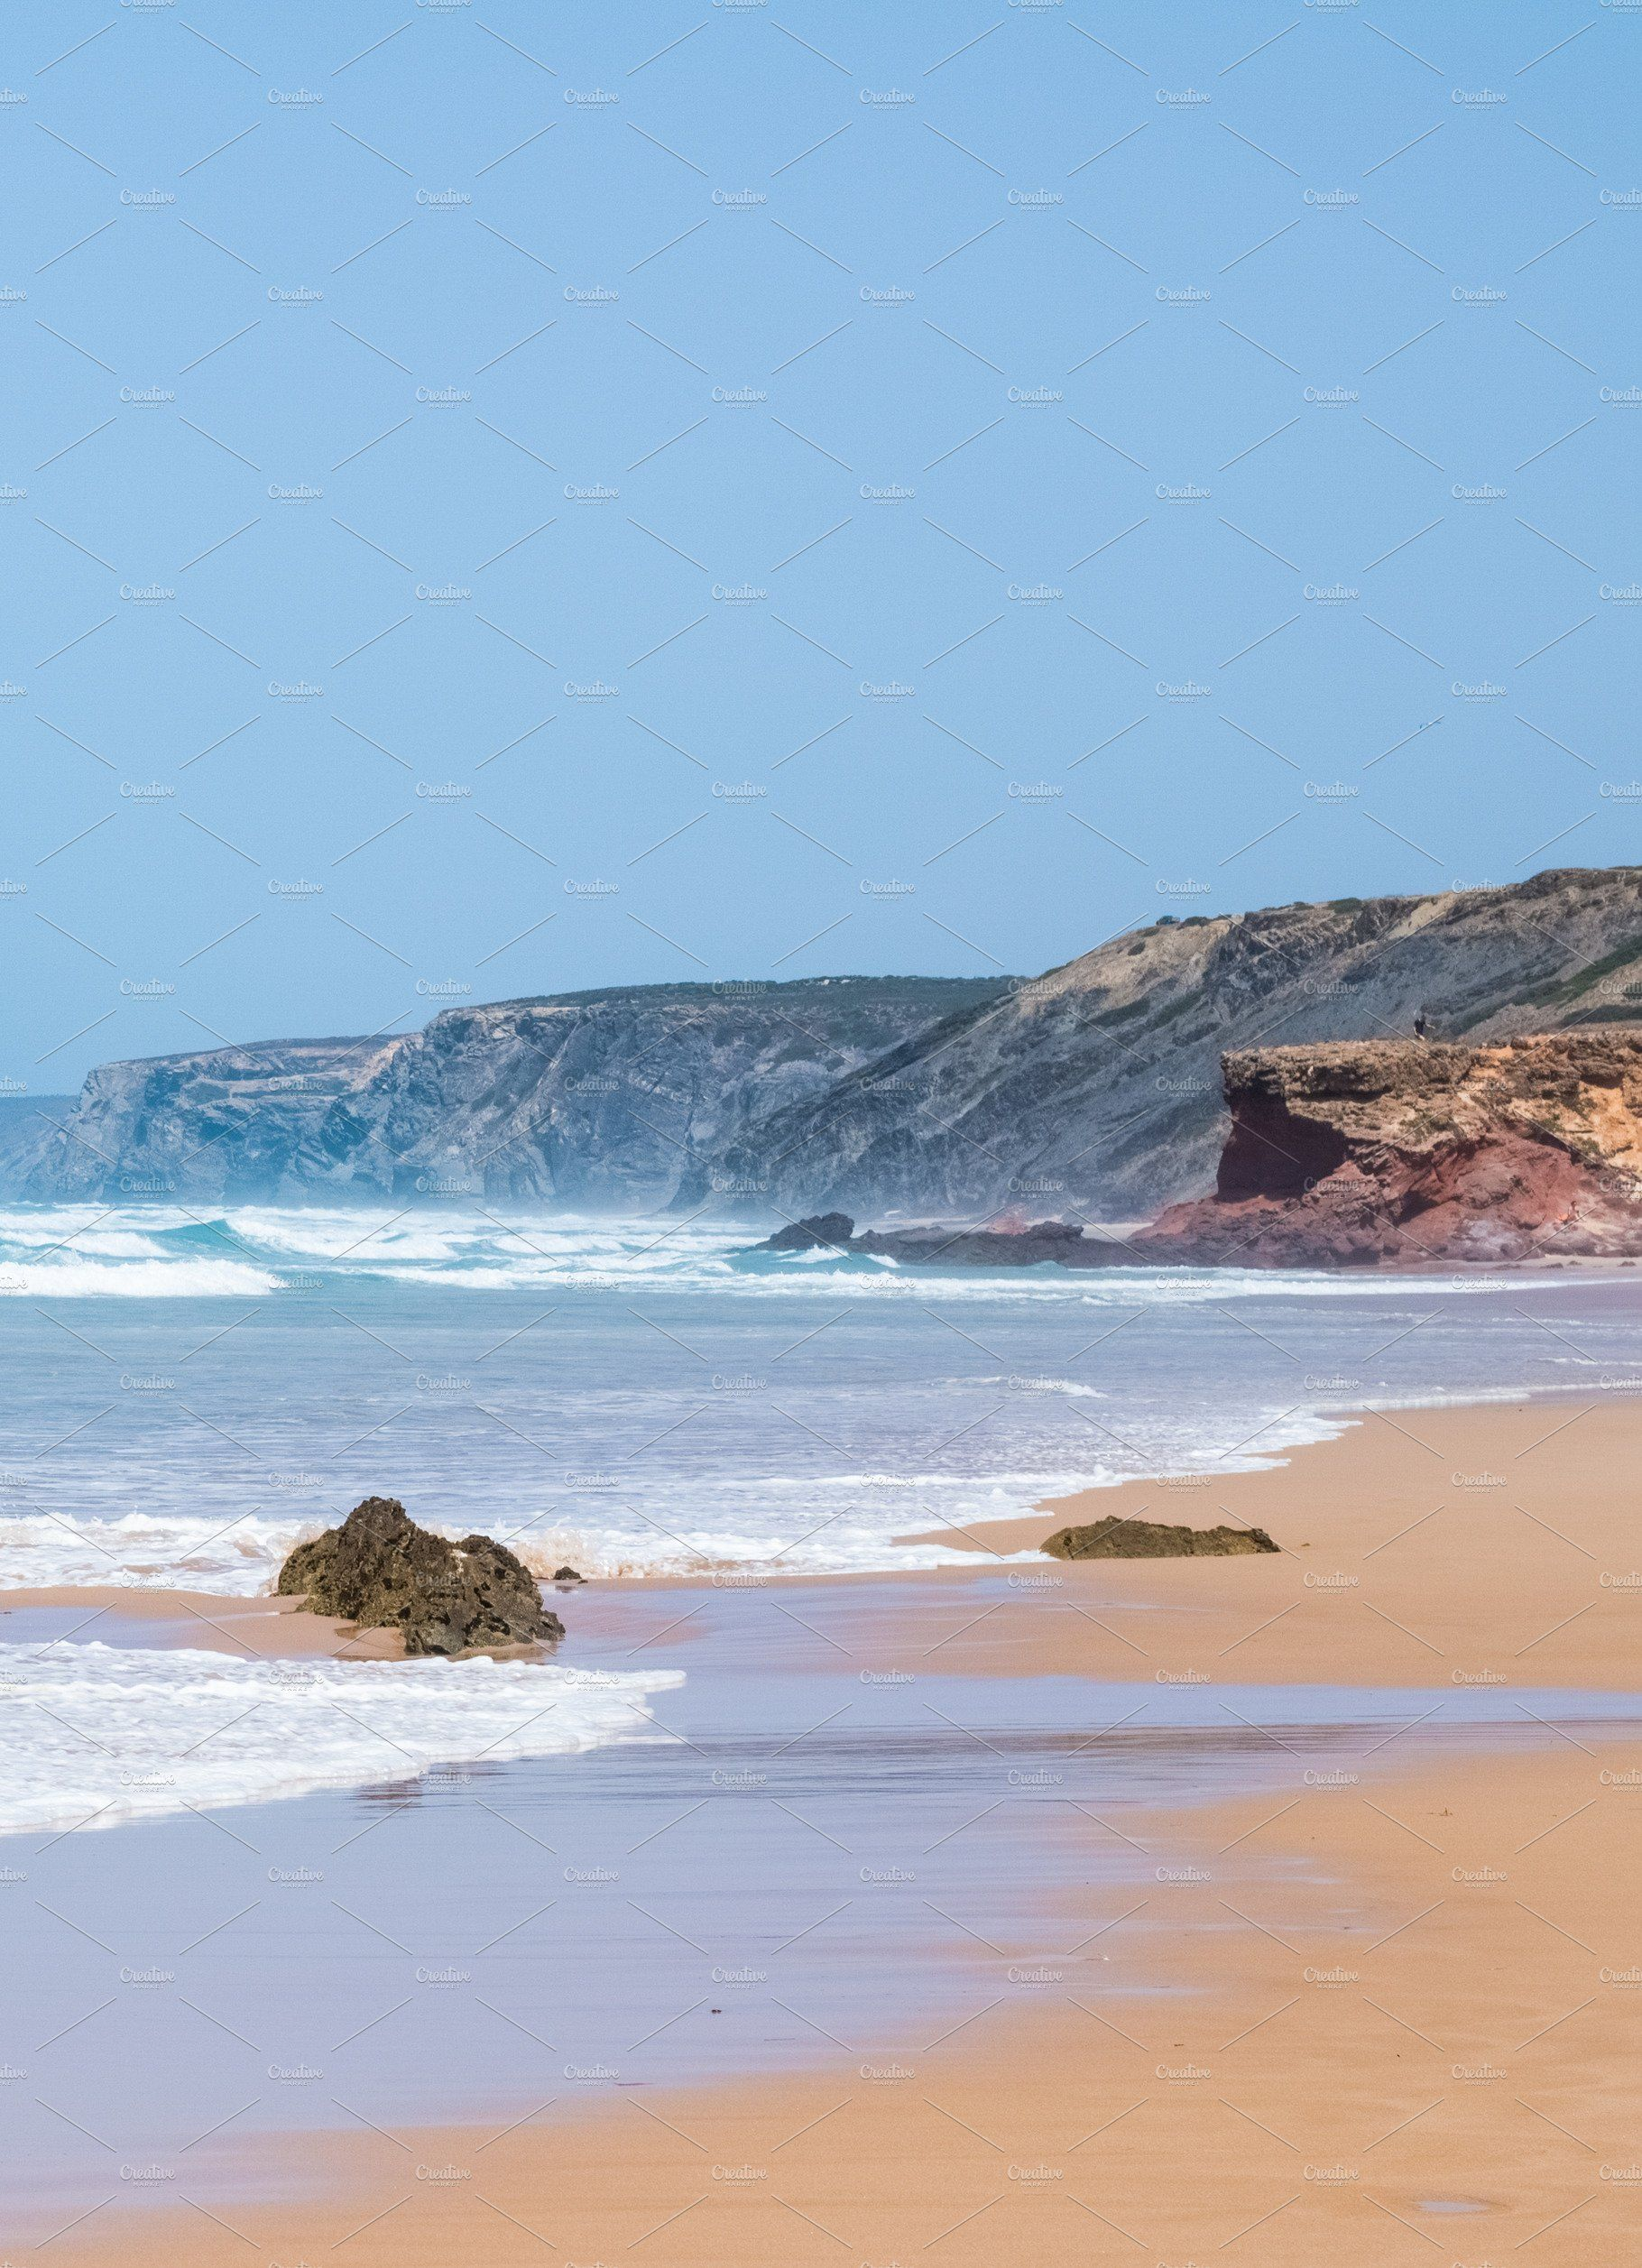 Ocean Coast View Perfect Travel And Landscape Photography Beach Summer Beach Holidays Holiday Vacations